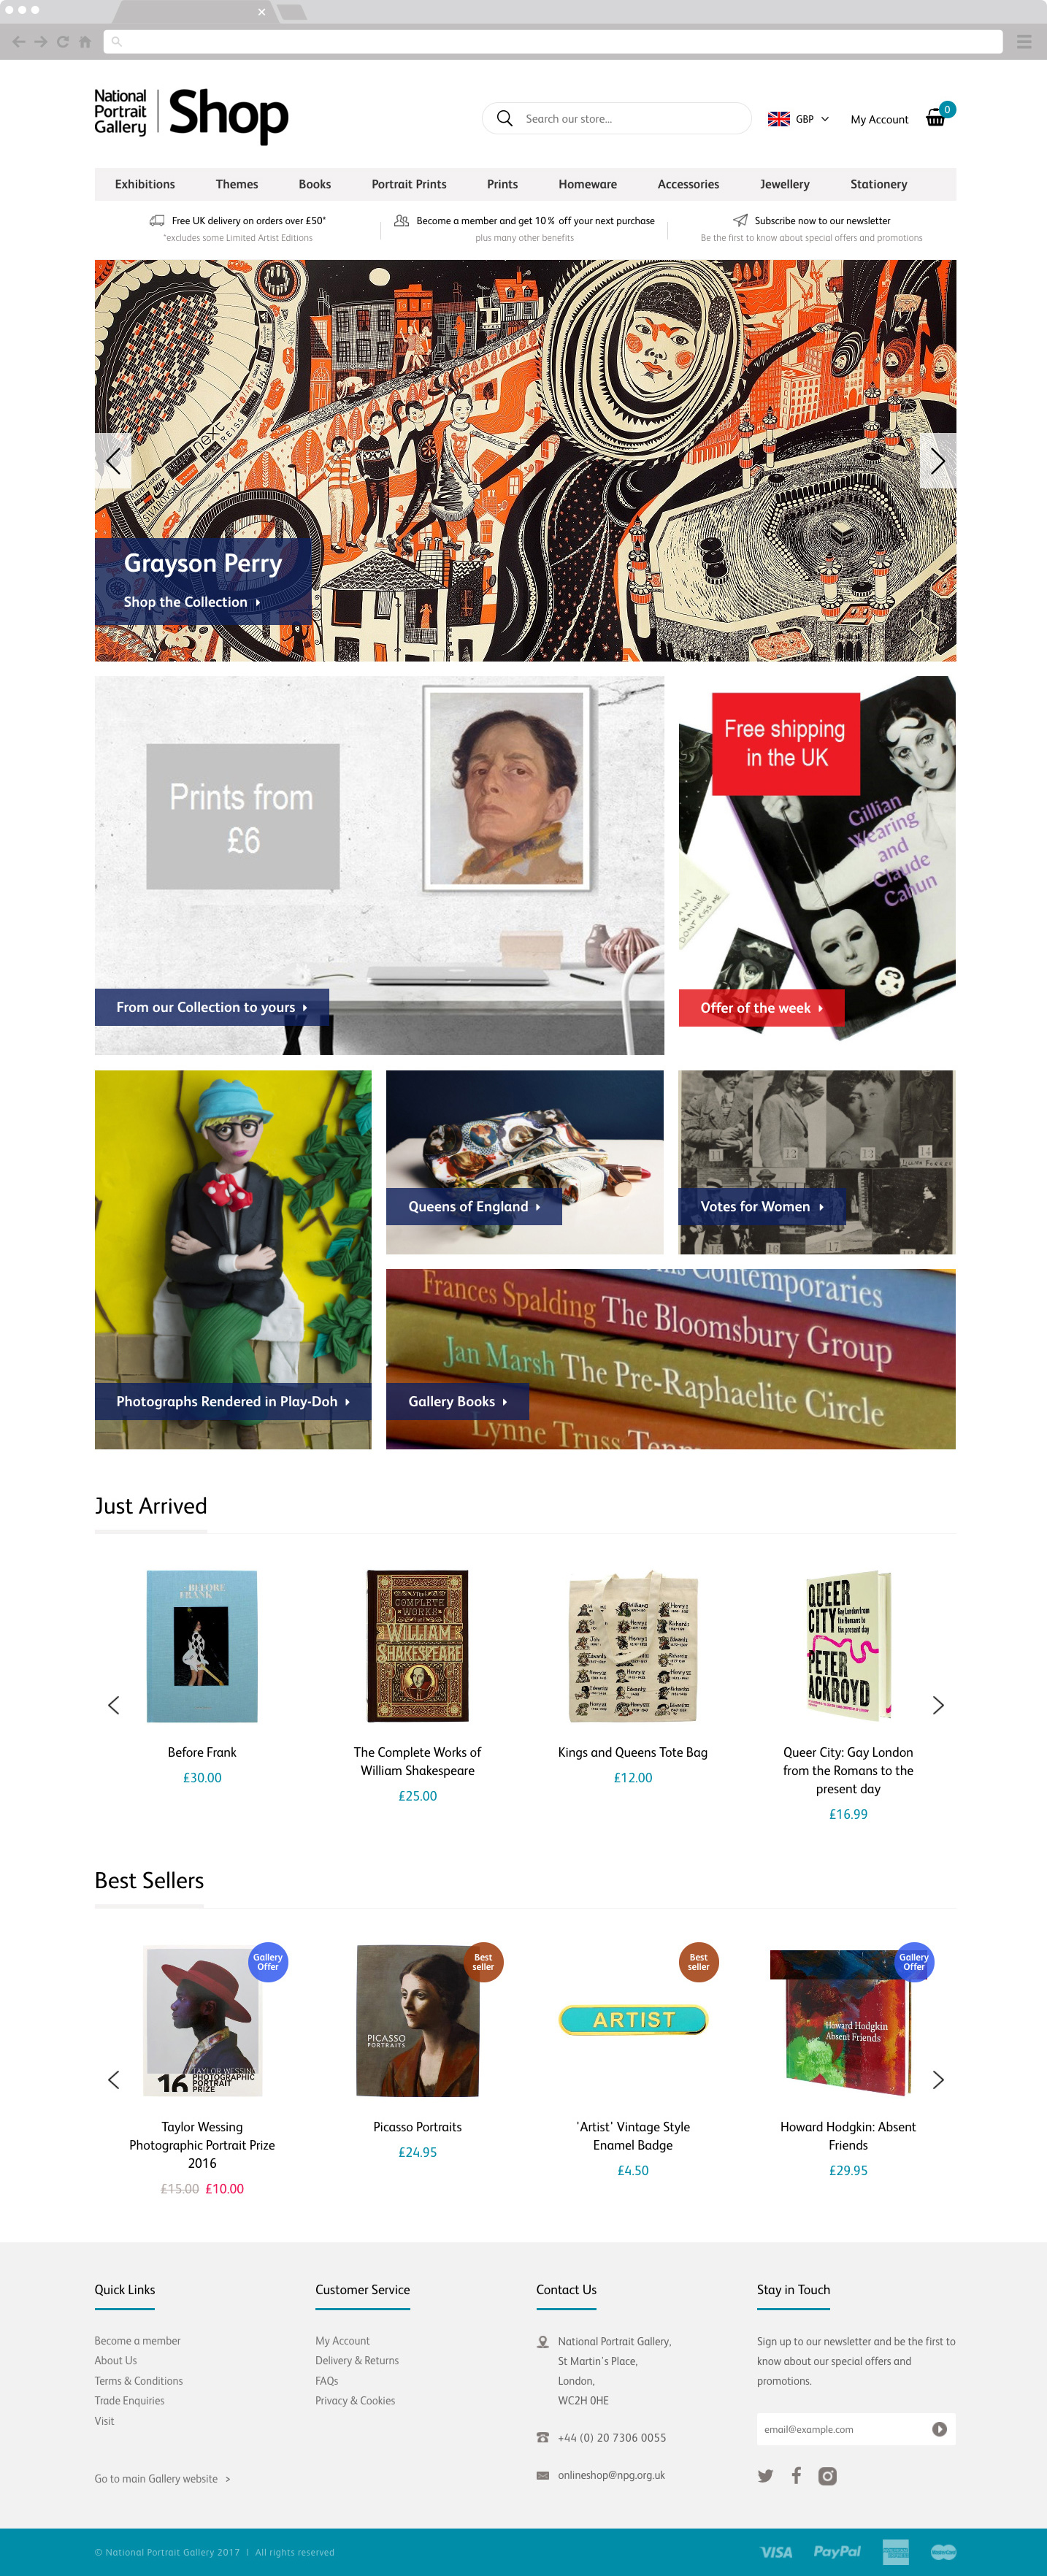 National Portrait Gallery Shop Homepage